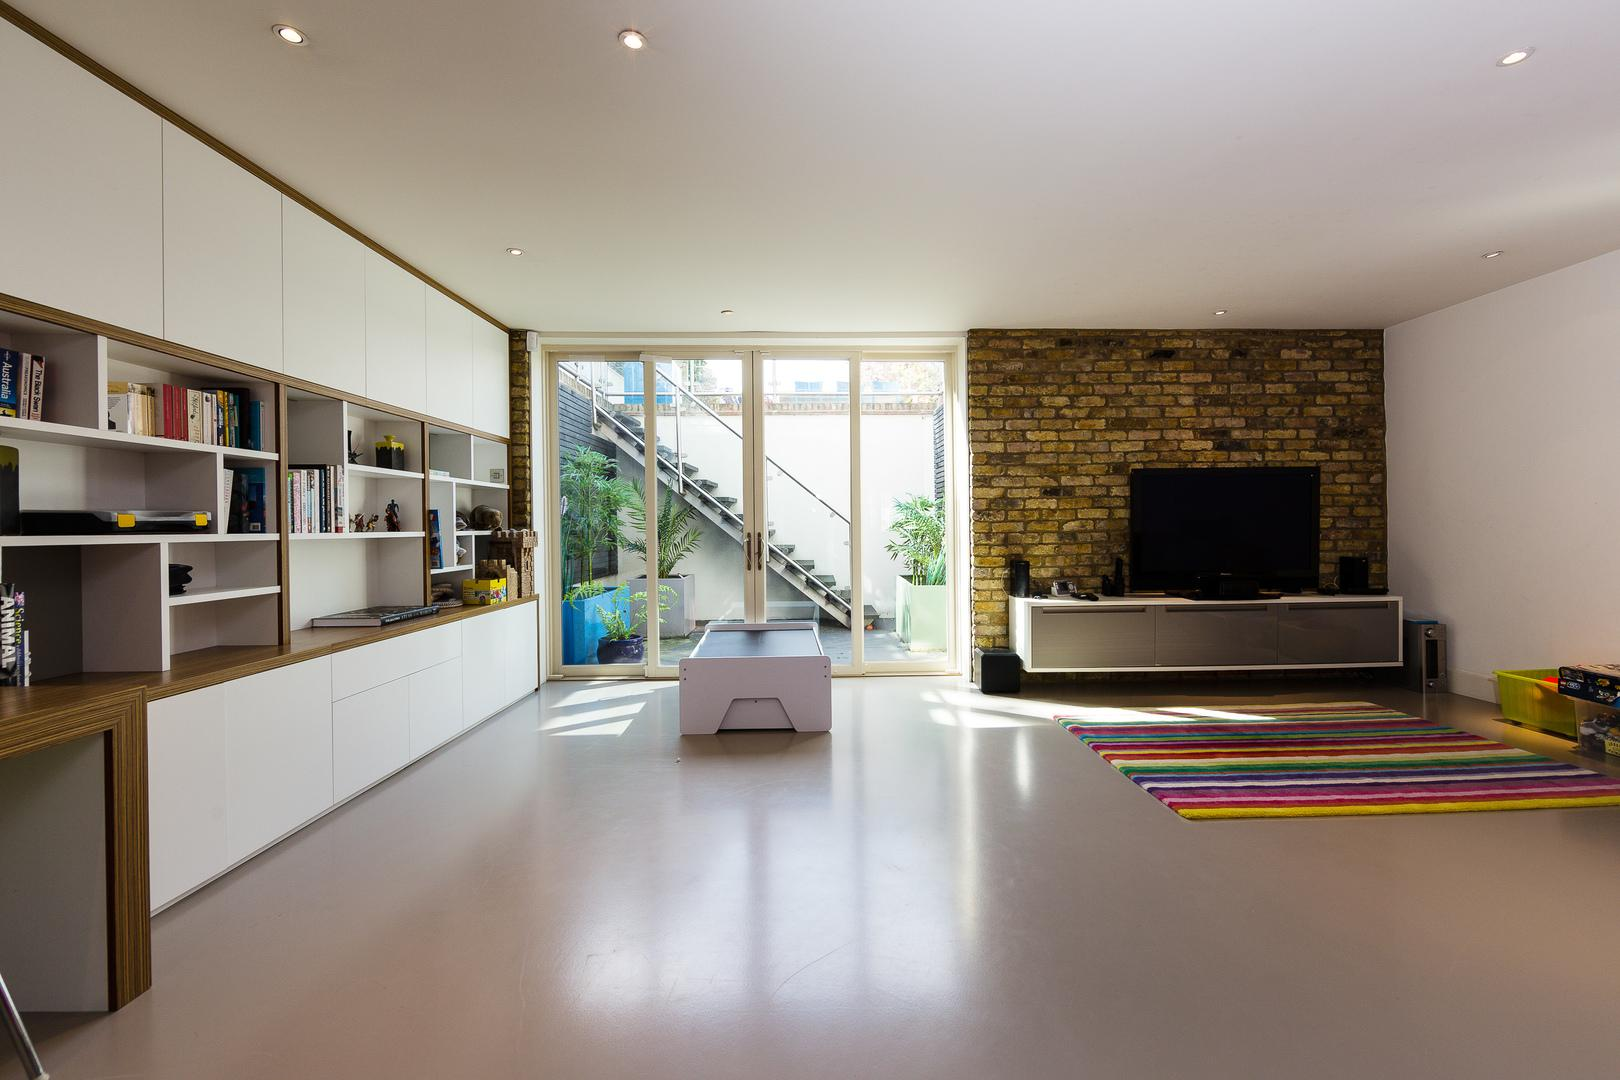 Property Image 2 - Impressive Crouch End Home with Stunning Furnishings